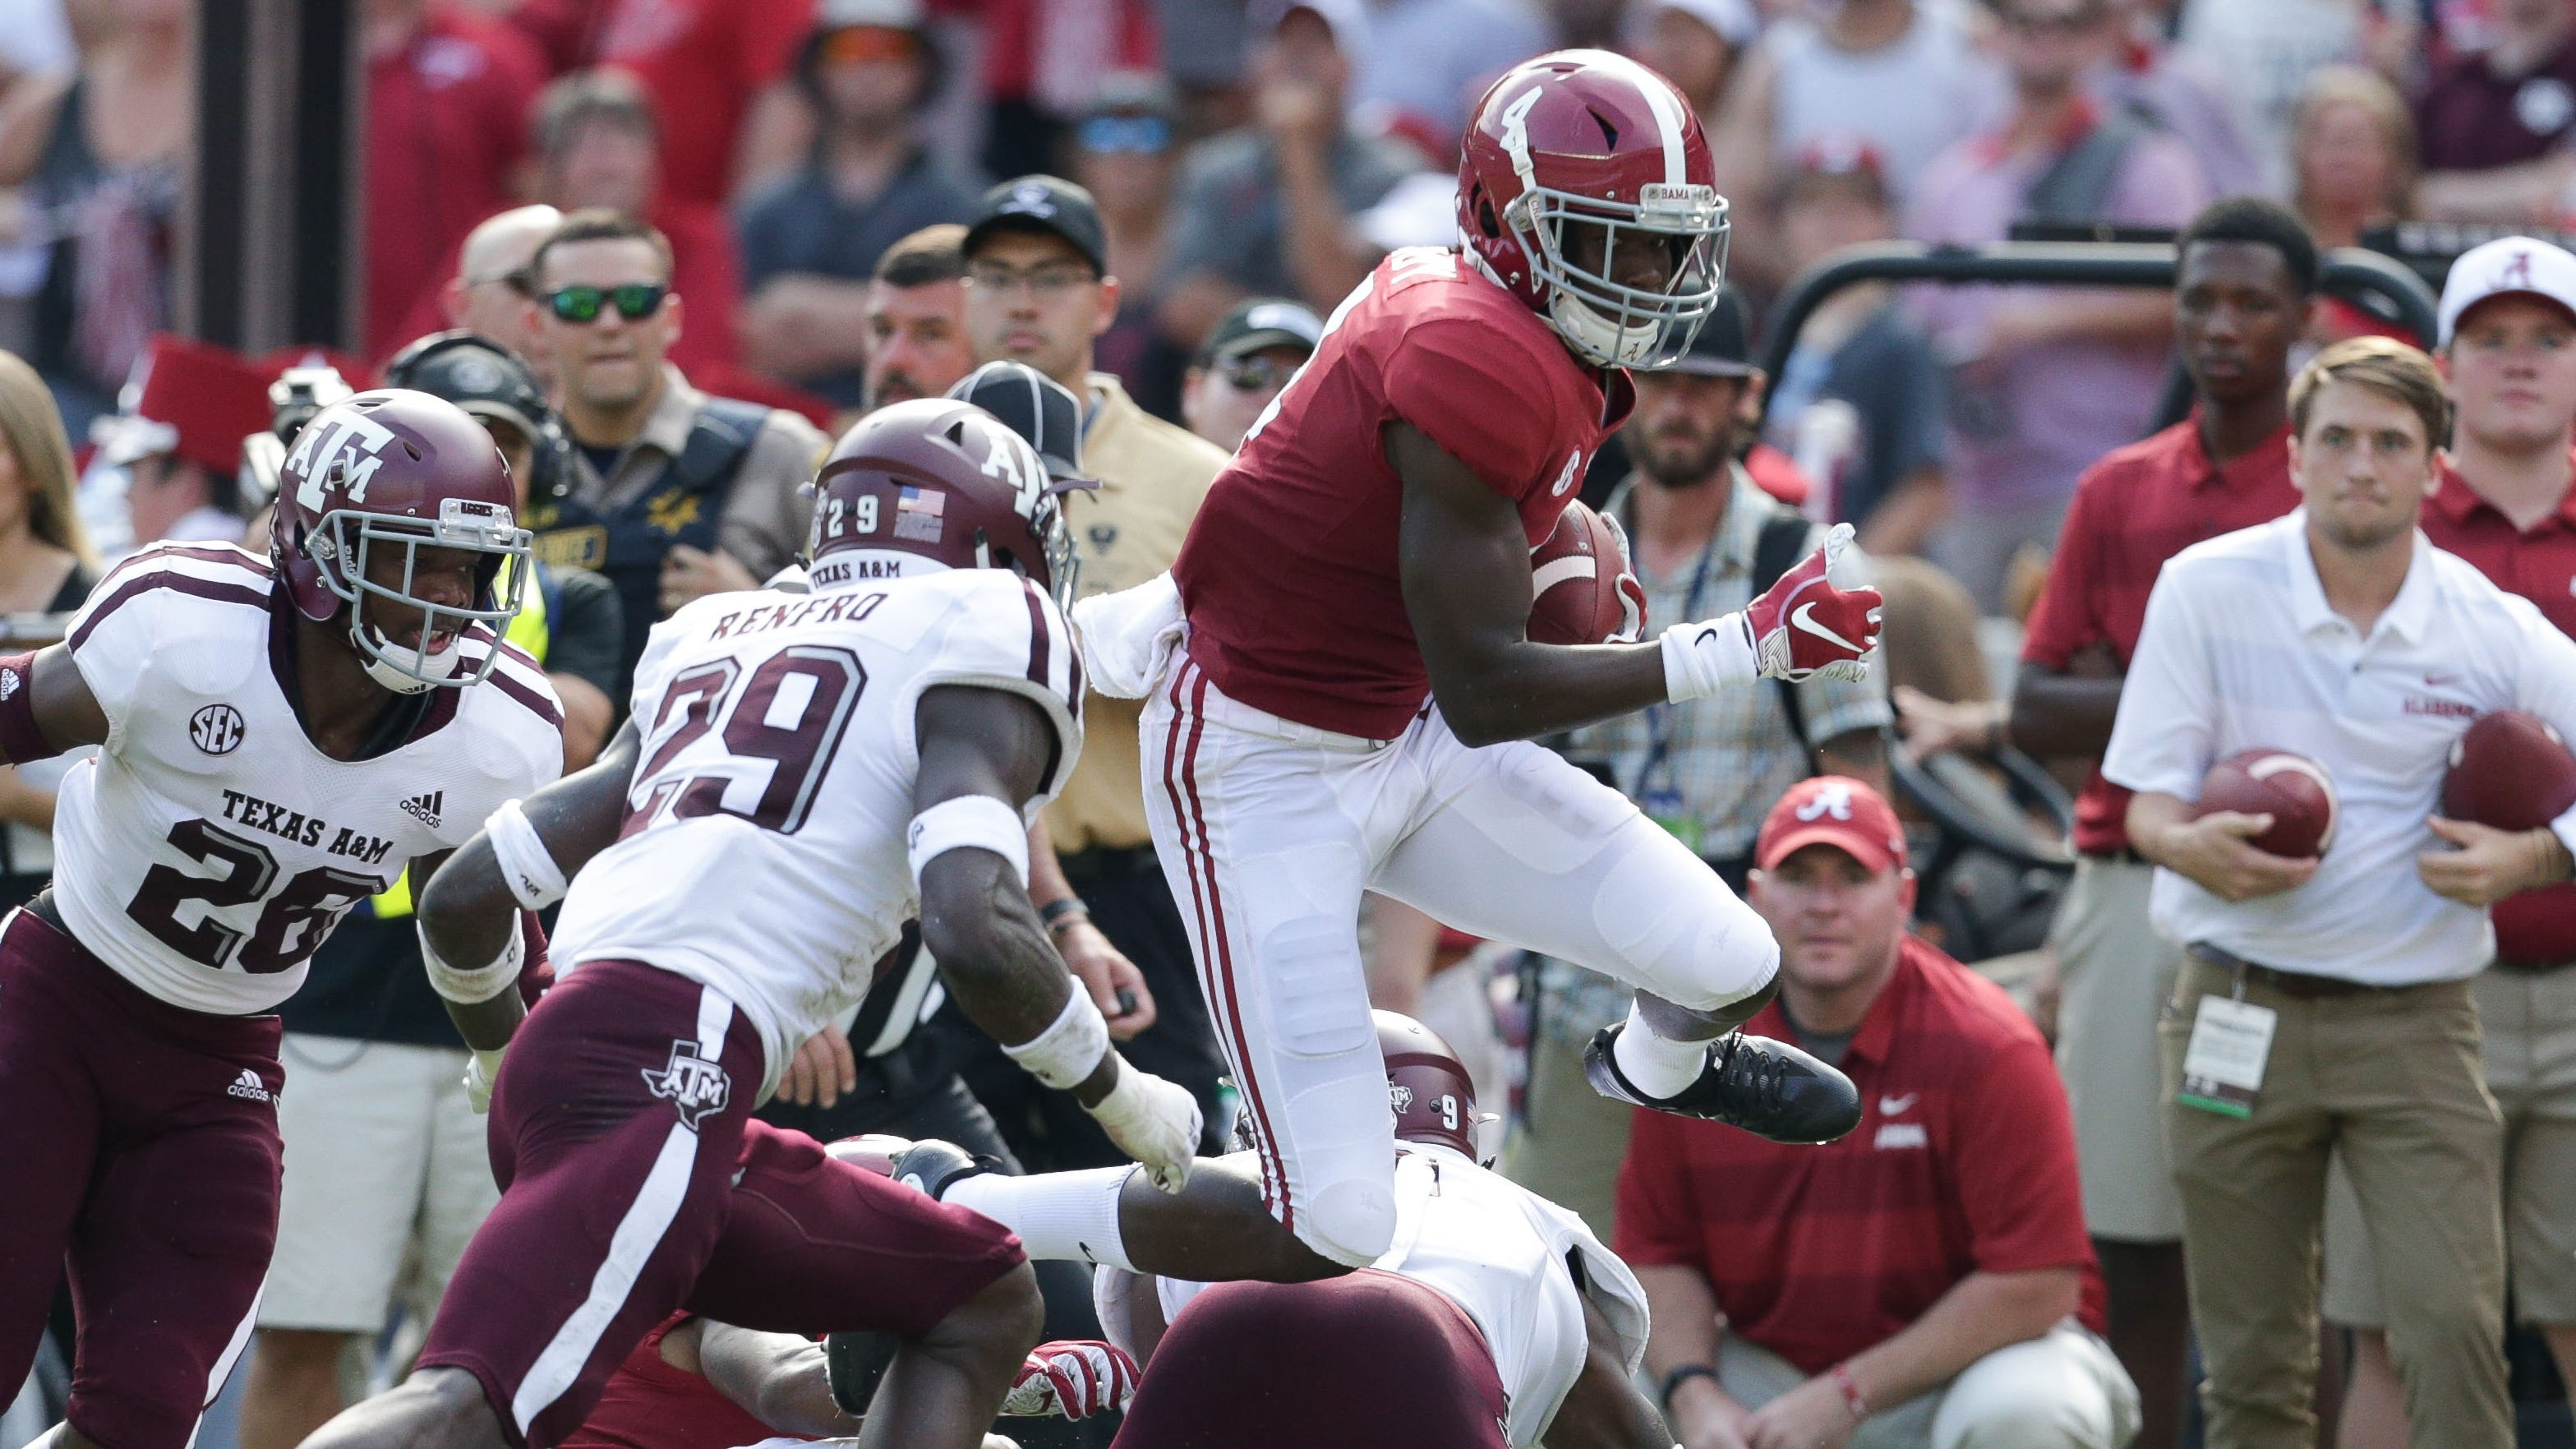 Alabama wide receiver Jerry Jeudy leaps past a Texas A&M defenders during their game at Bryant-Denny Stadium.